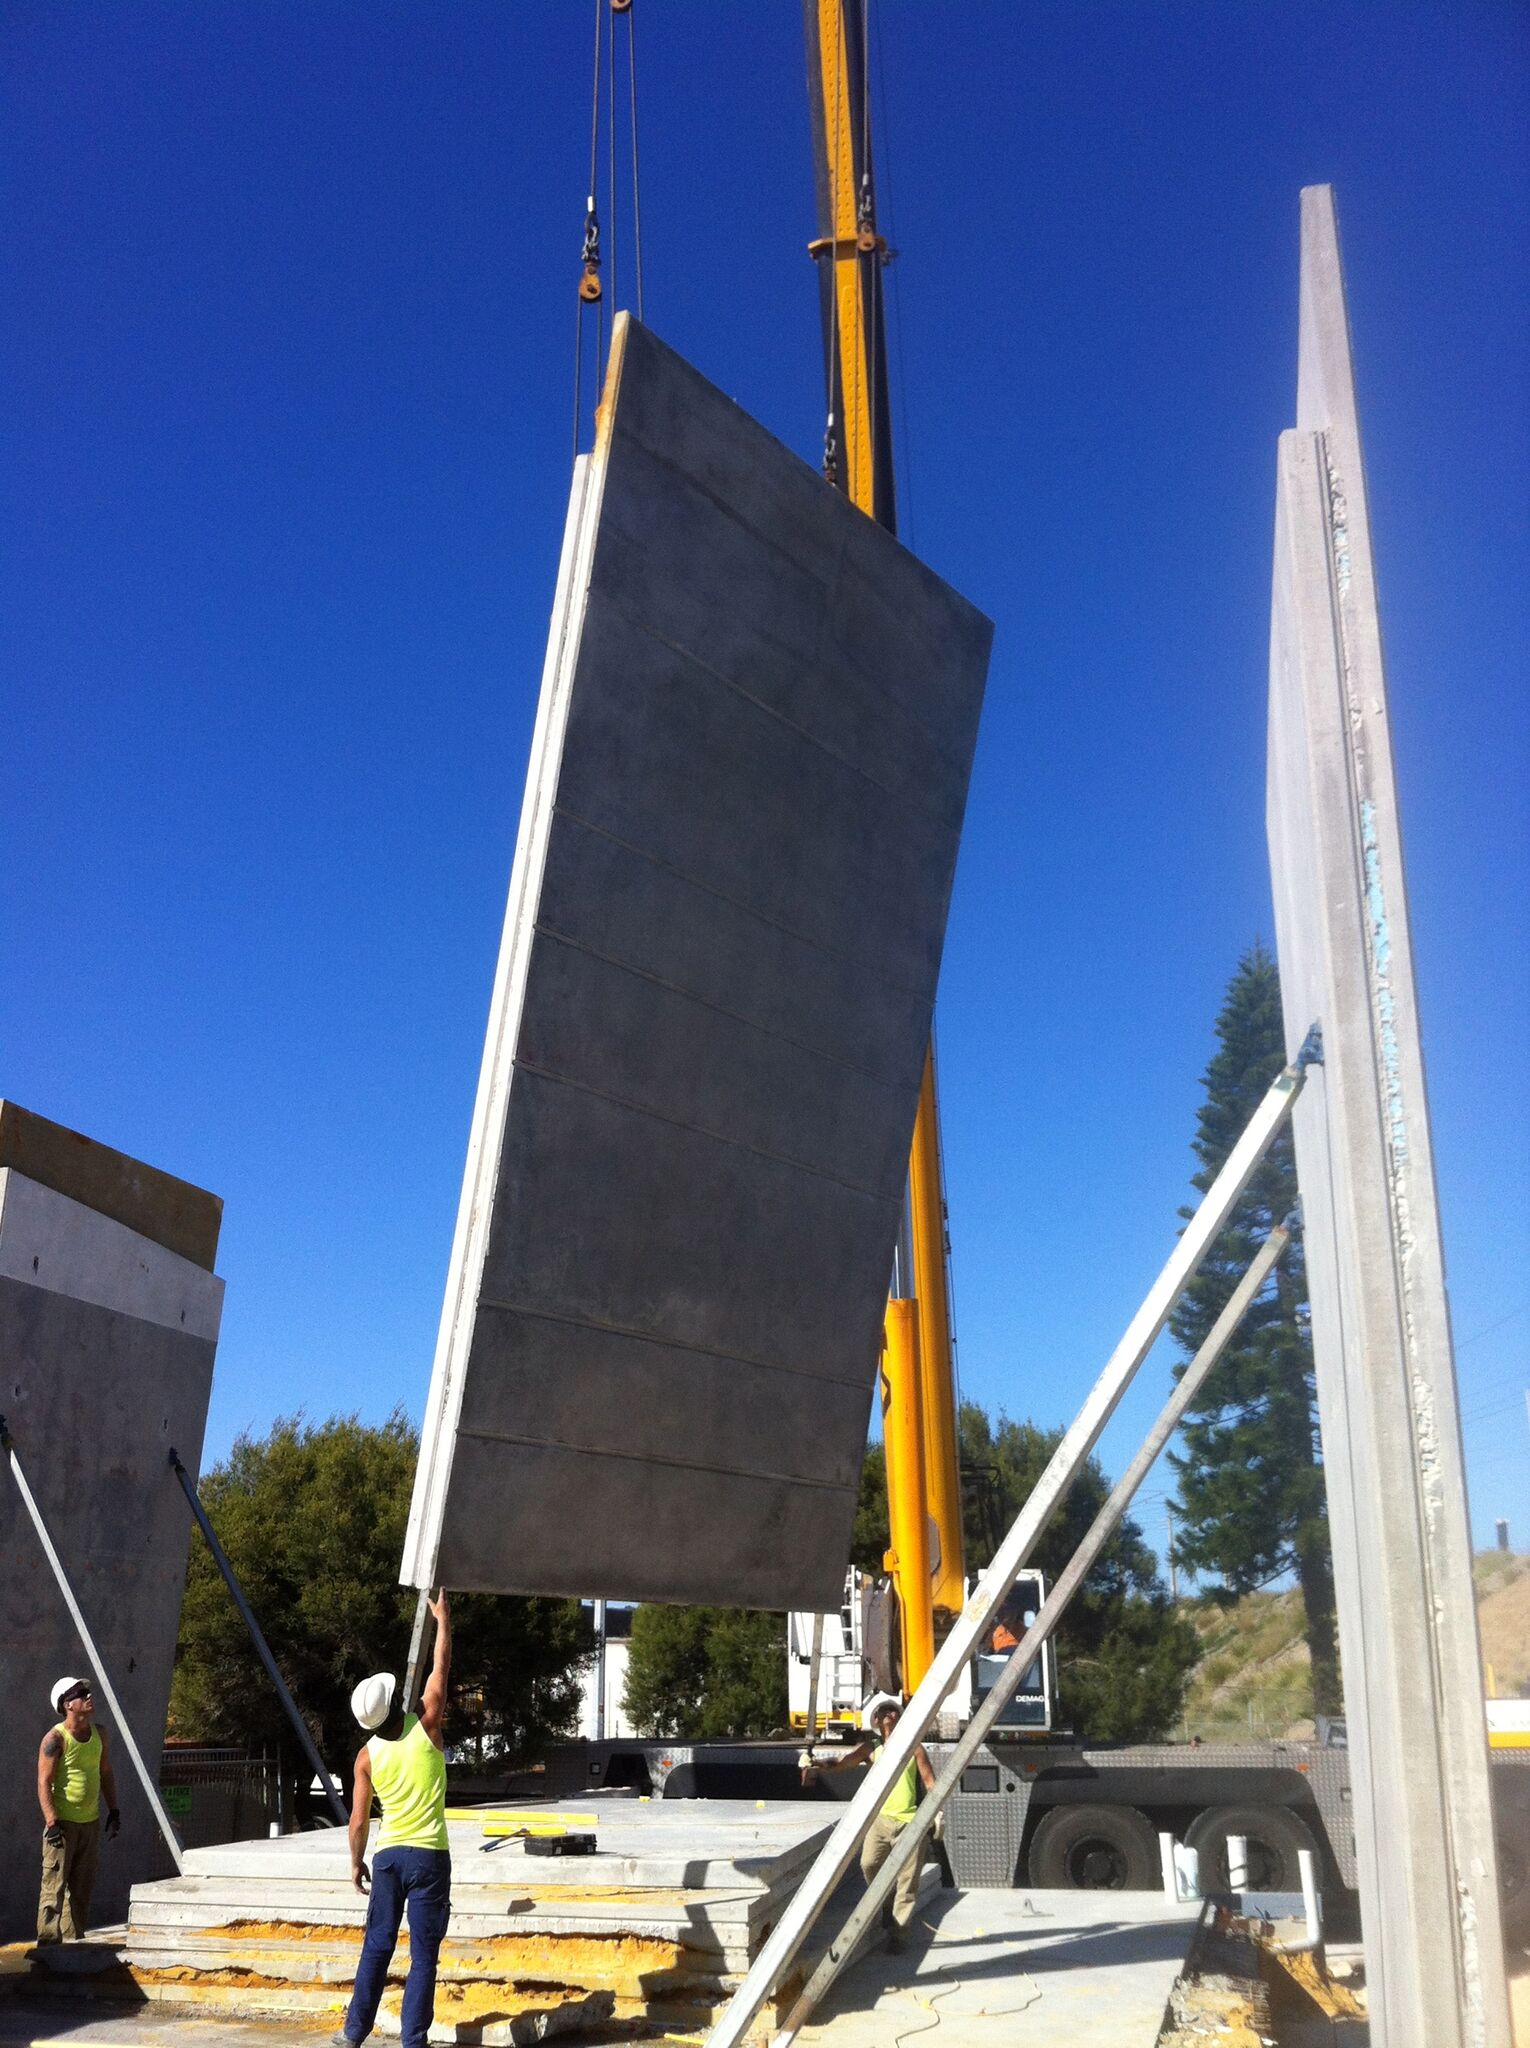 Concrete panels are lowered into place during construction.